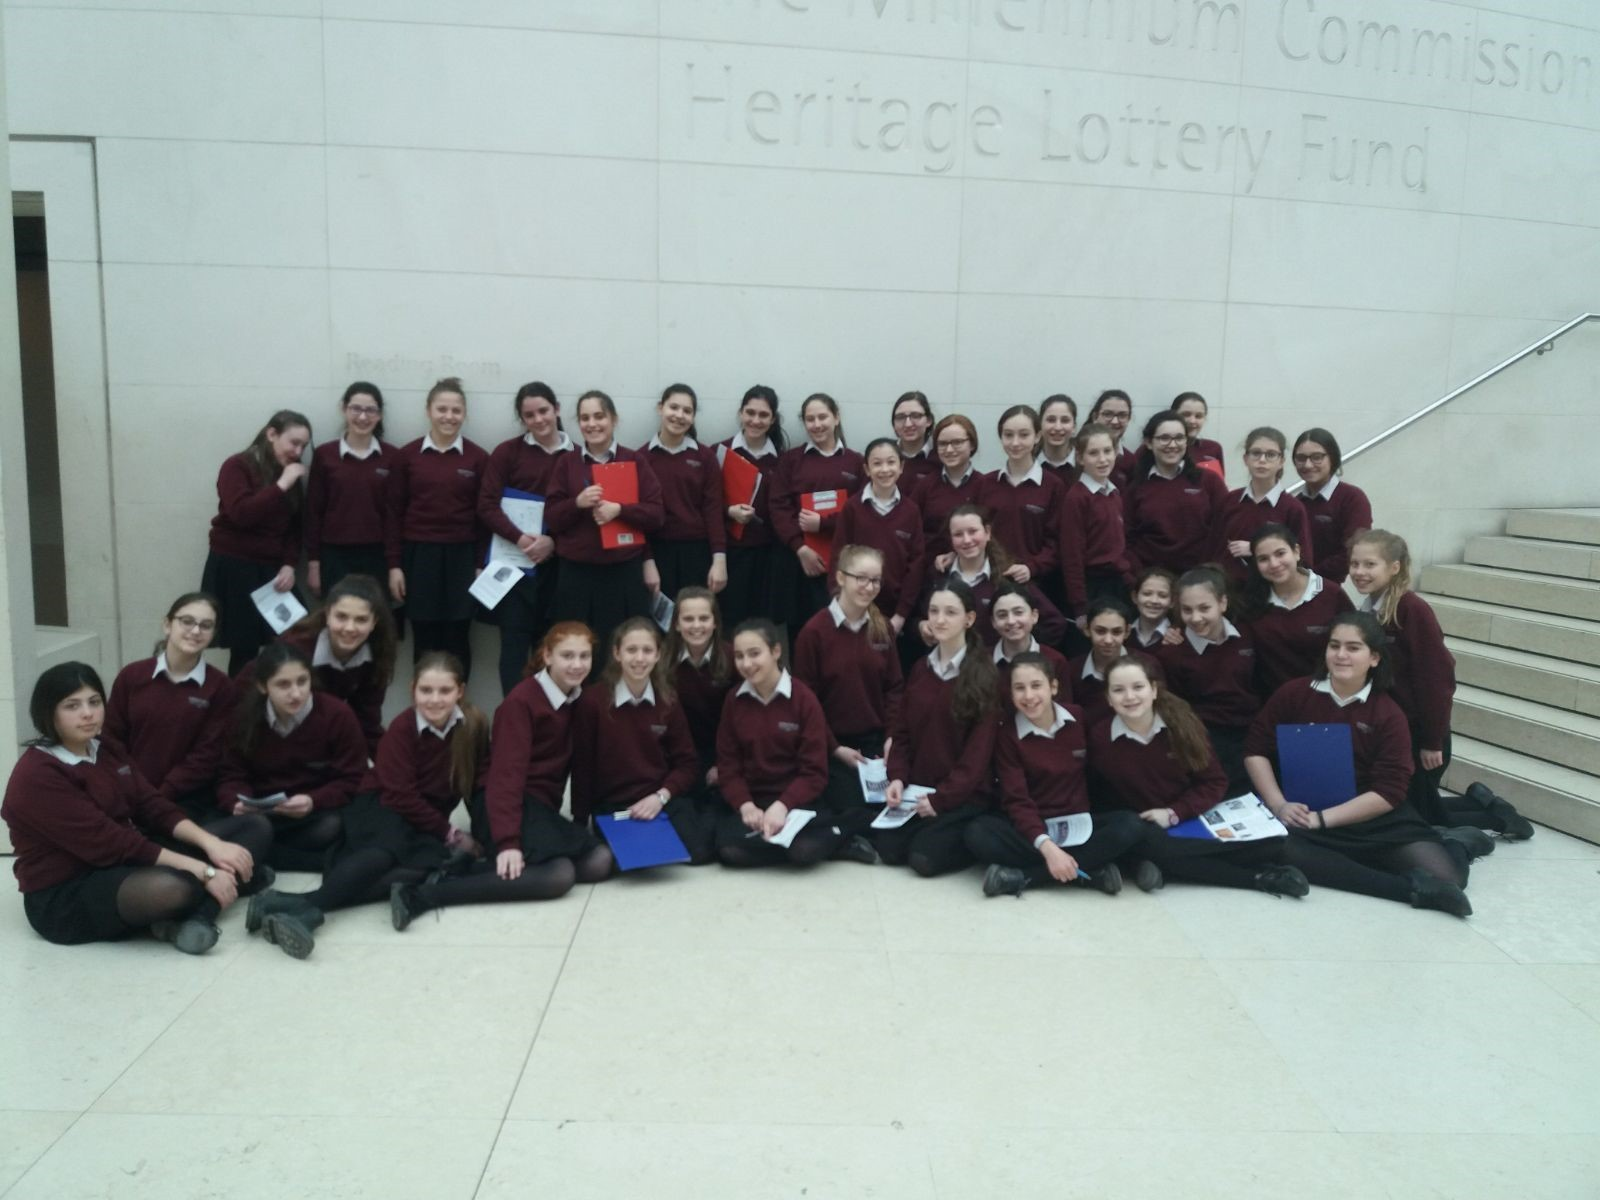 Hasmonean High School organised a trip to the British museum for students to learn about the story of the Jews in Egypt